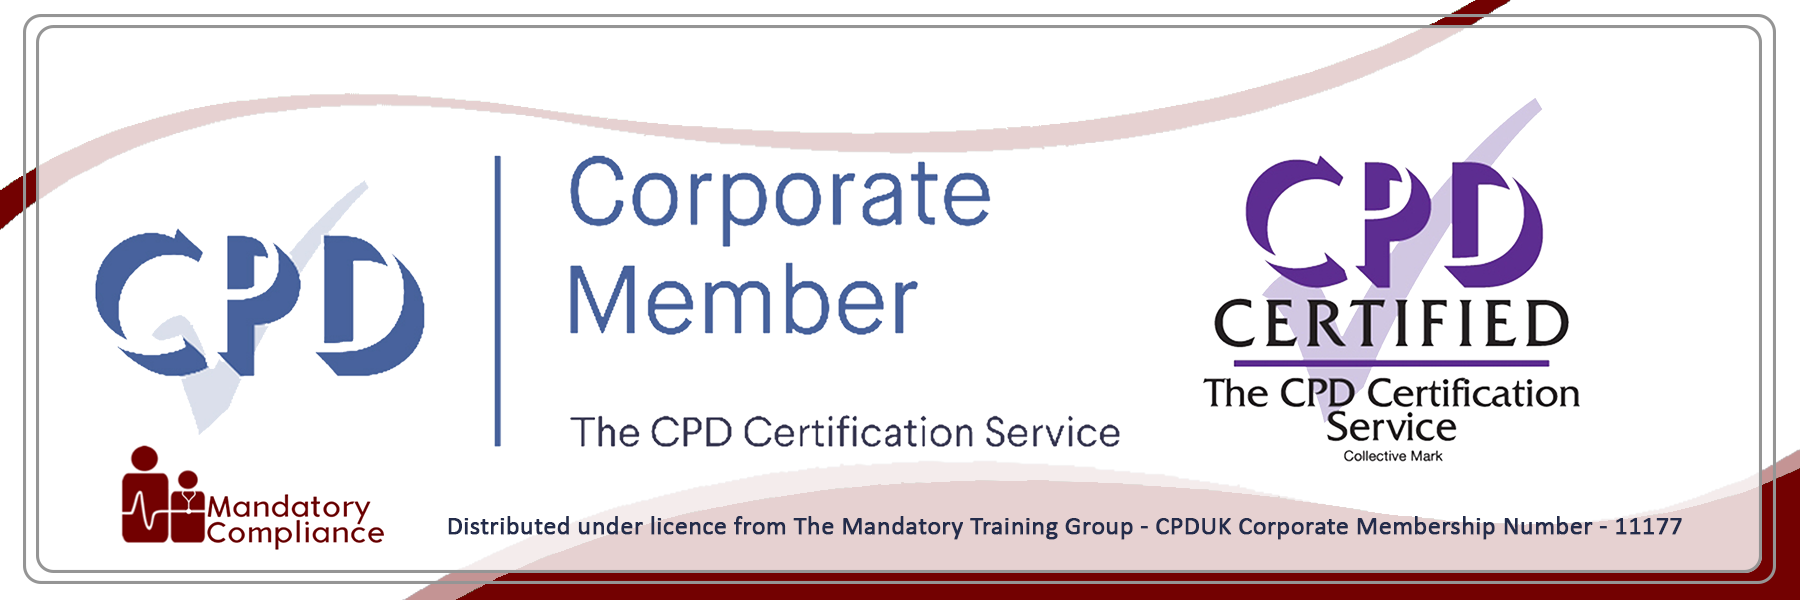 Safeguarding Adults at Risk - Online Training Course - CPD Accredited - Mandatory Compliance UK -